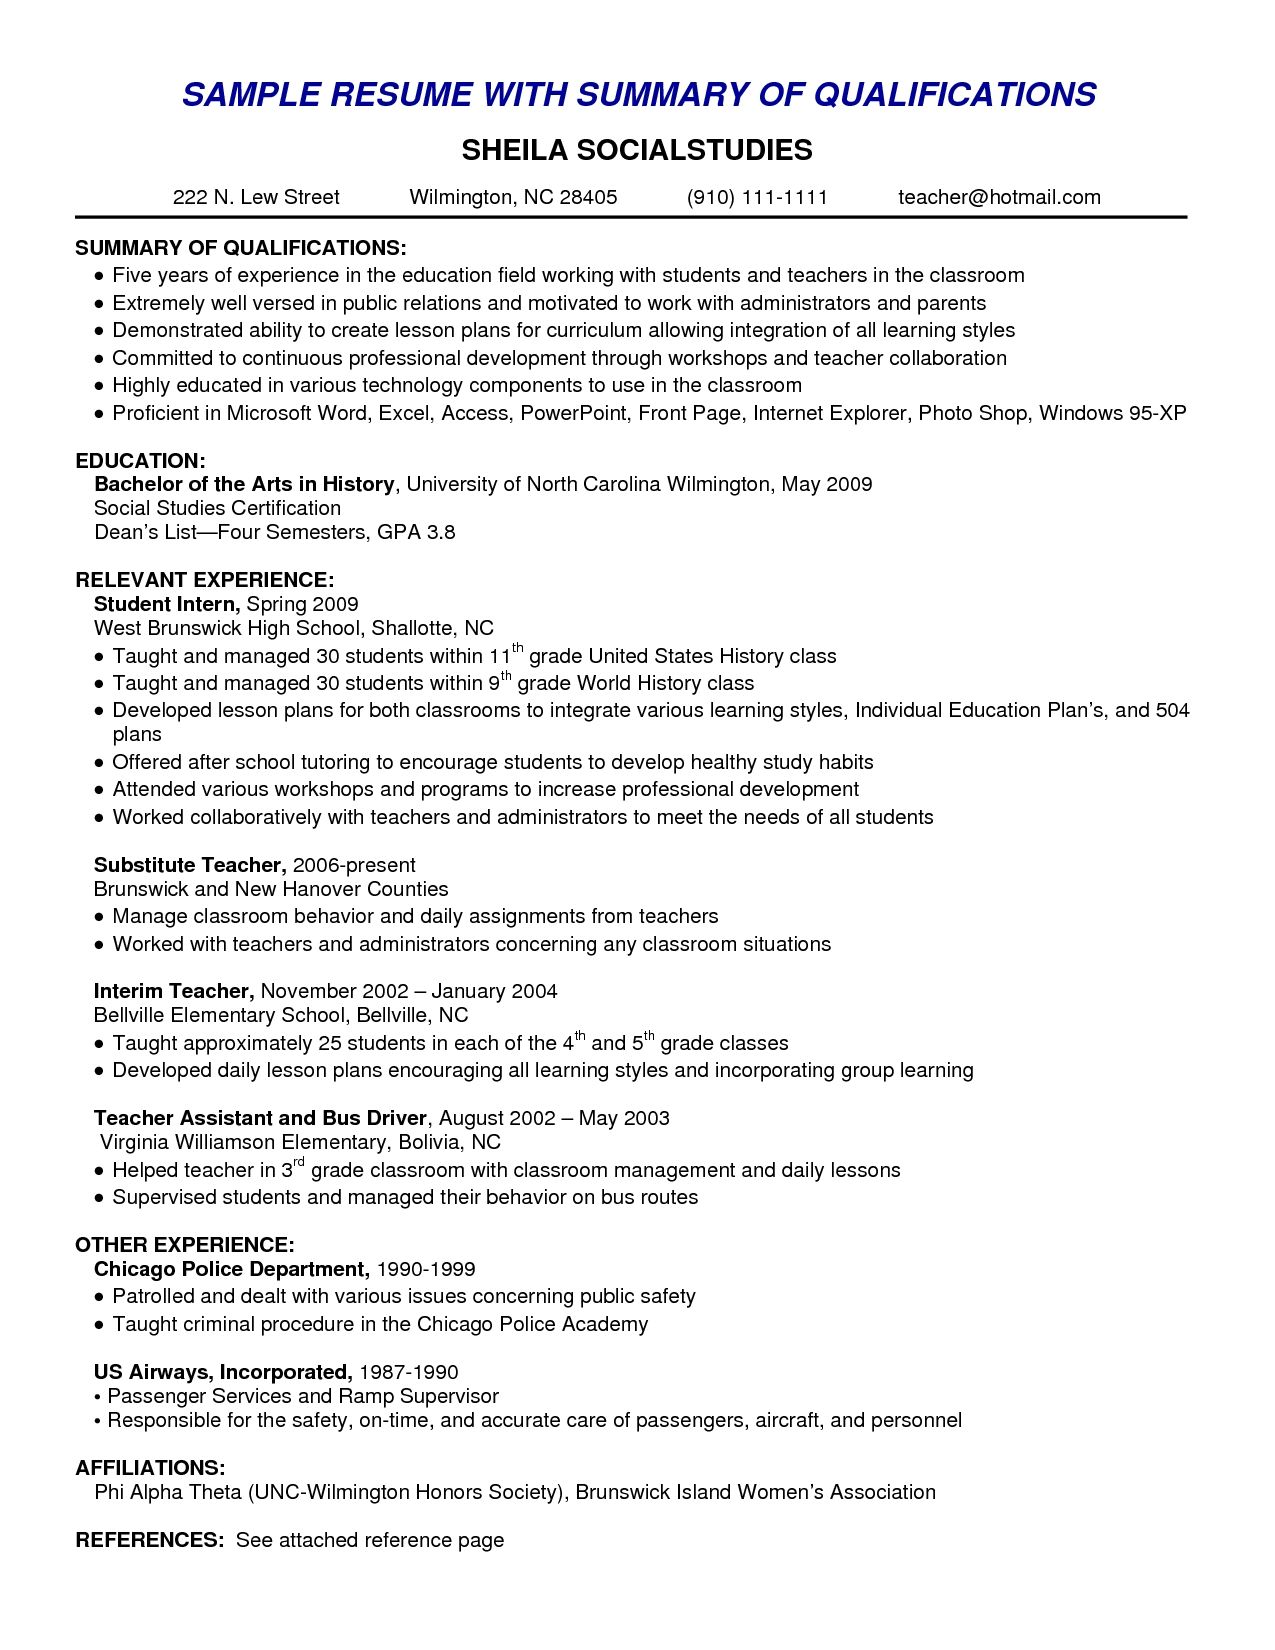 Example Of A Summary For A Resume Pleasing Resume Skills Summary Examples Example Of Skills Summary For Resume .